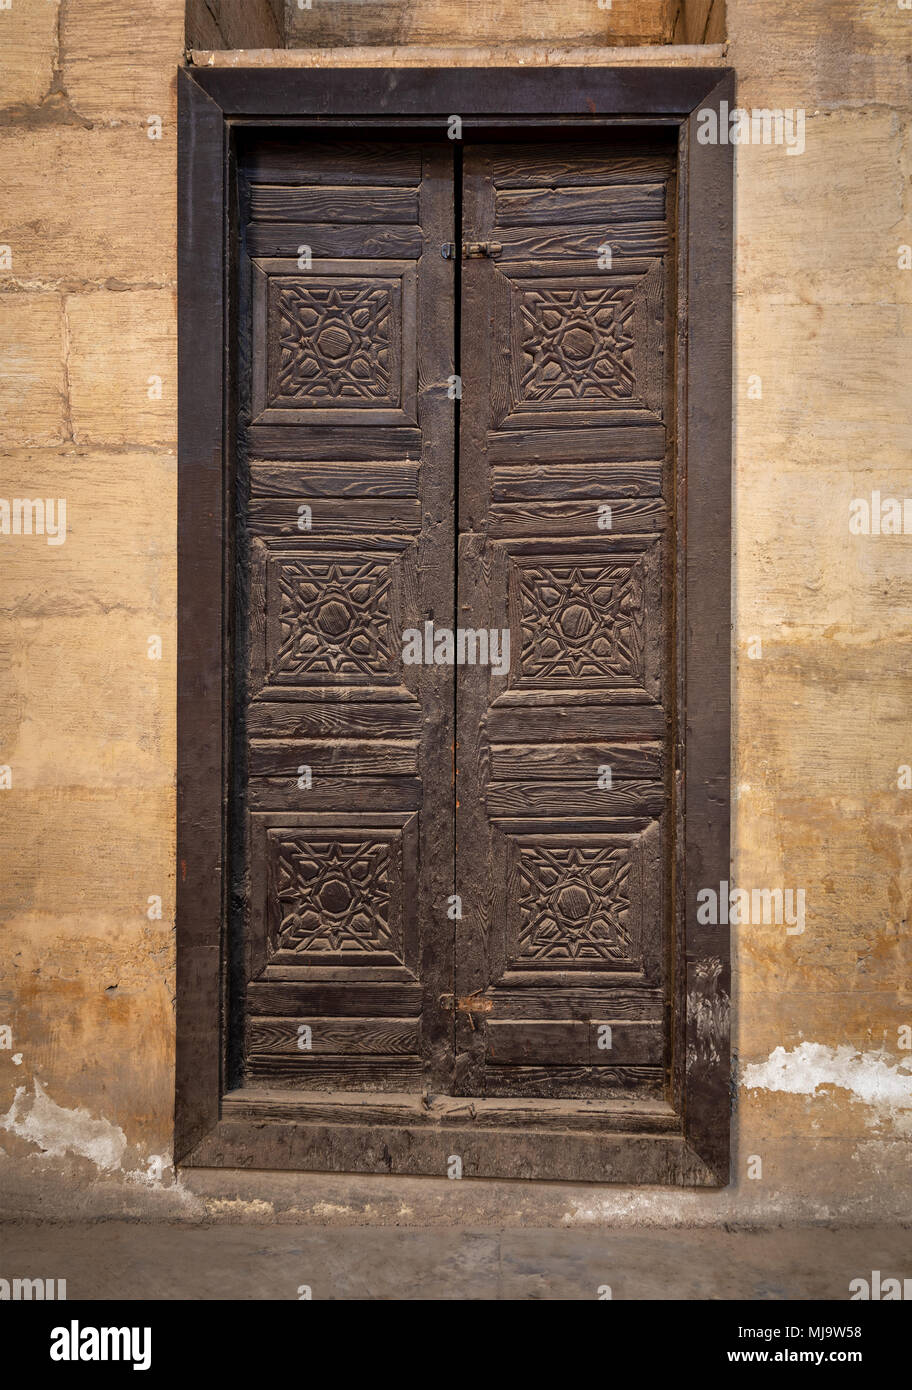 Wooden aged grunge door and stone bricks wall, Medieval Cairo, Egypt - Stock Image